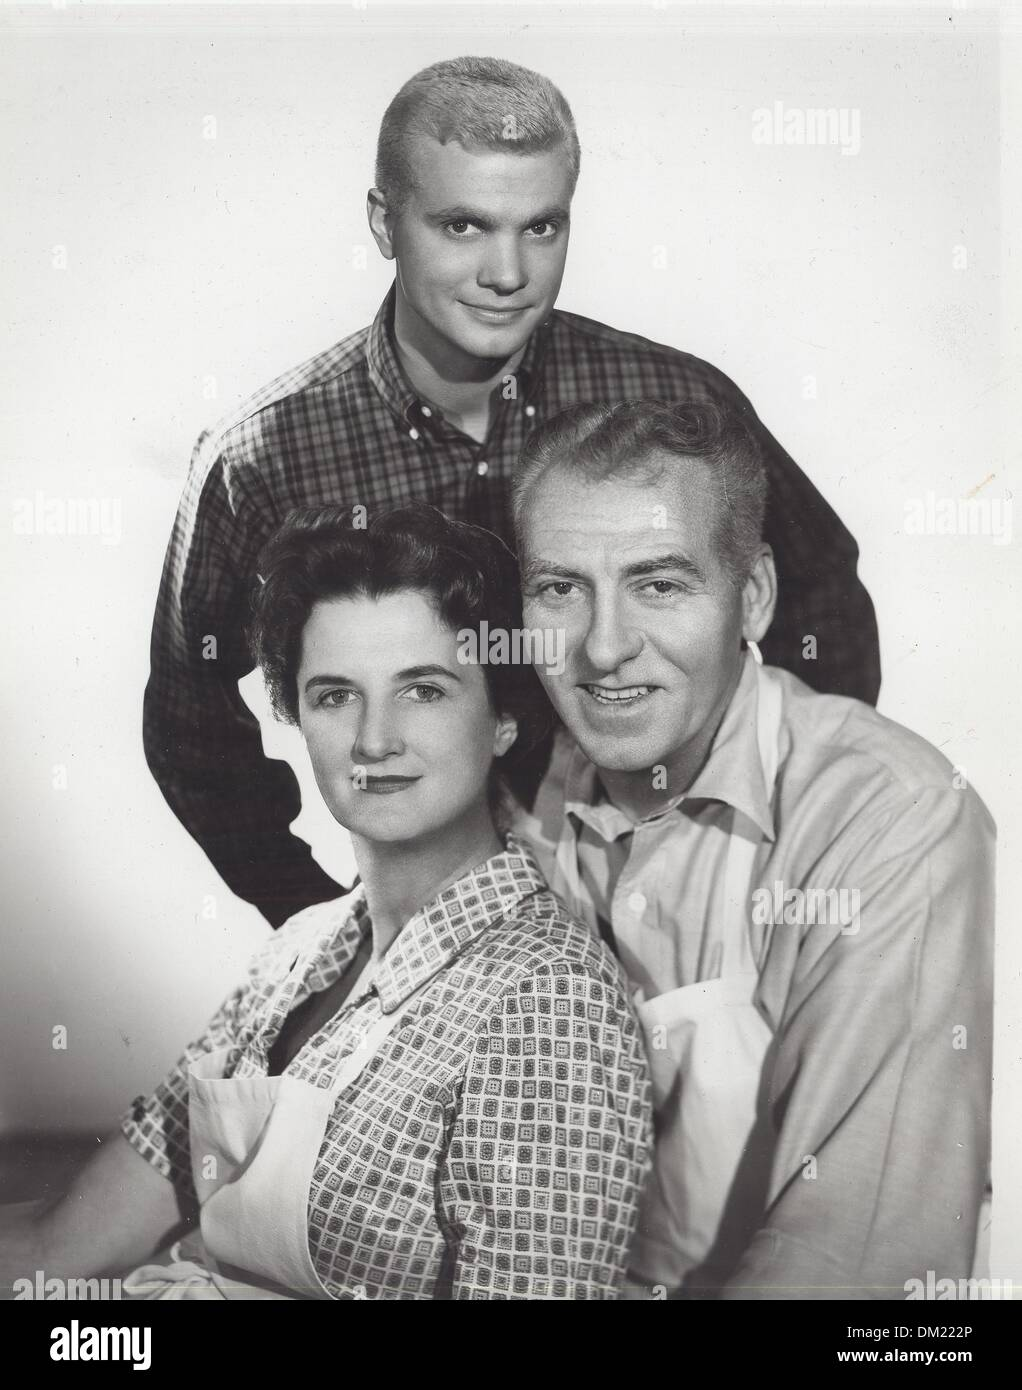 frank faylen actorfrank faylen actor, frank faylen it's a wonderful life, frank faylen movies, frank faylen photos, frank faylen imdb, frank faylen daughter, frank faylen grave, frank faylen, frank faylen dobie gillis, frank faylen death, frank faylen find a grave, frank faylen tv shows